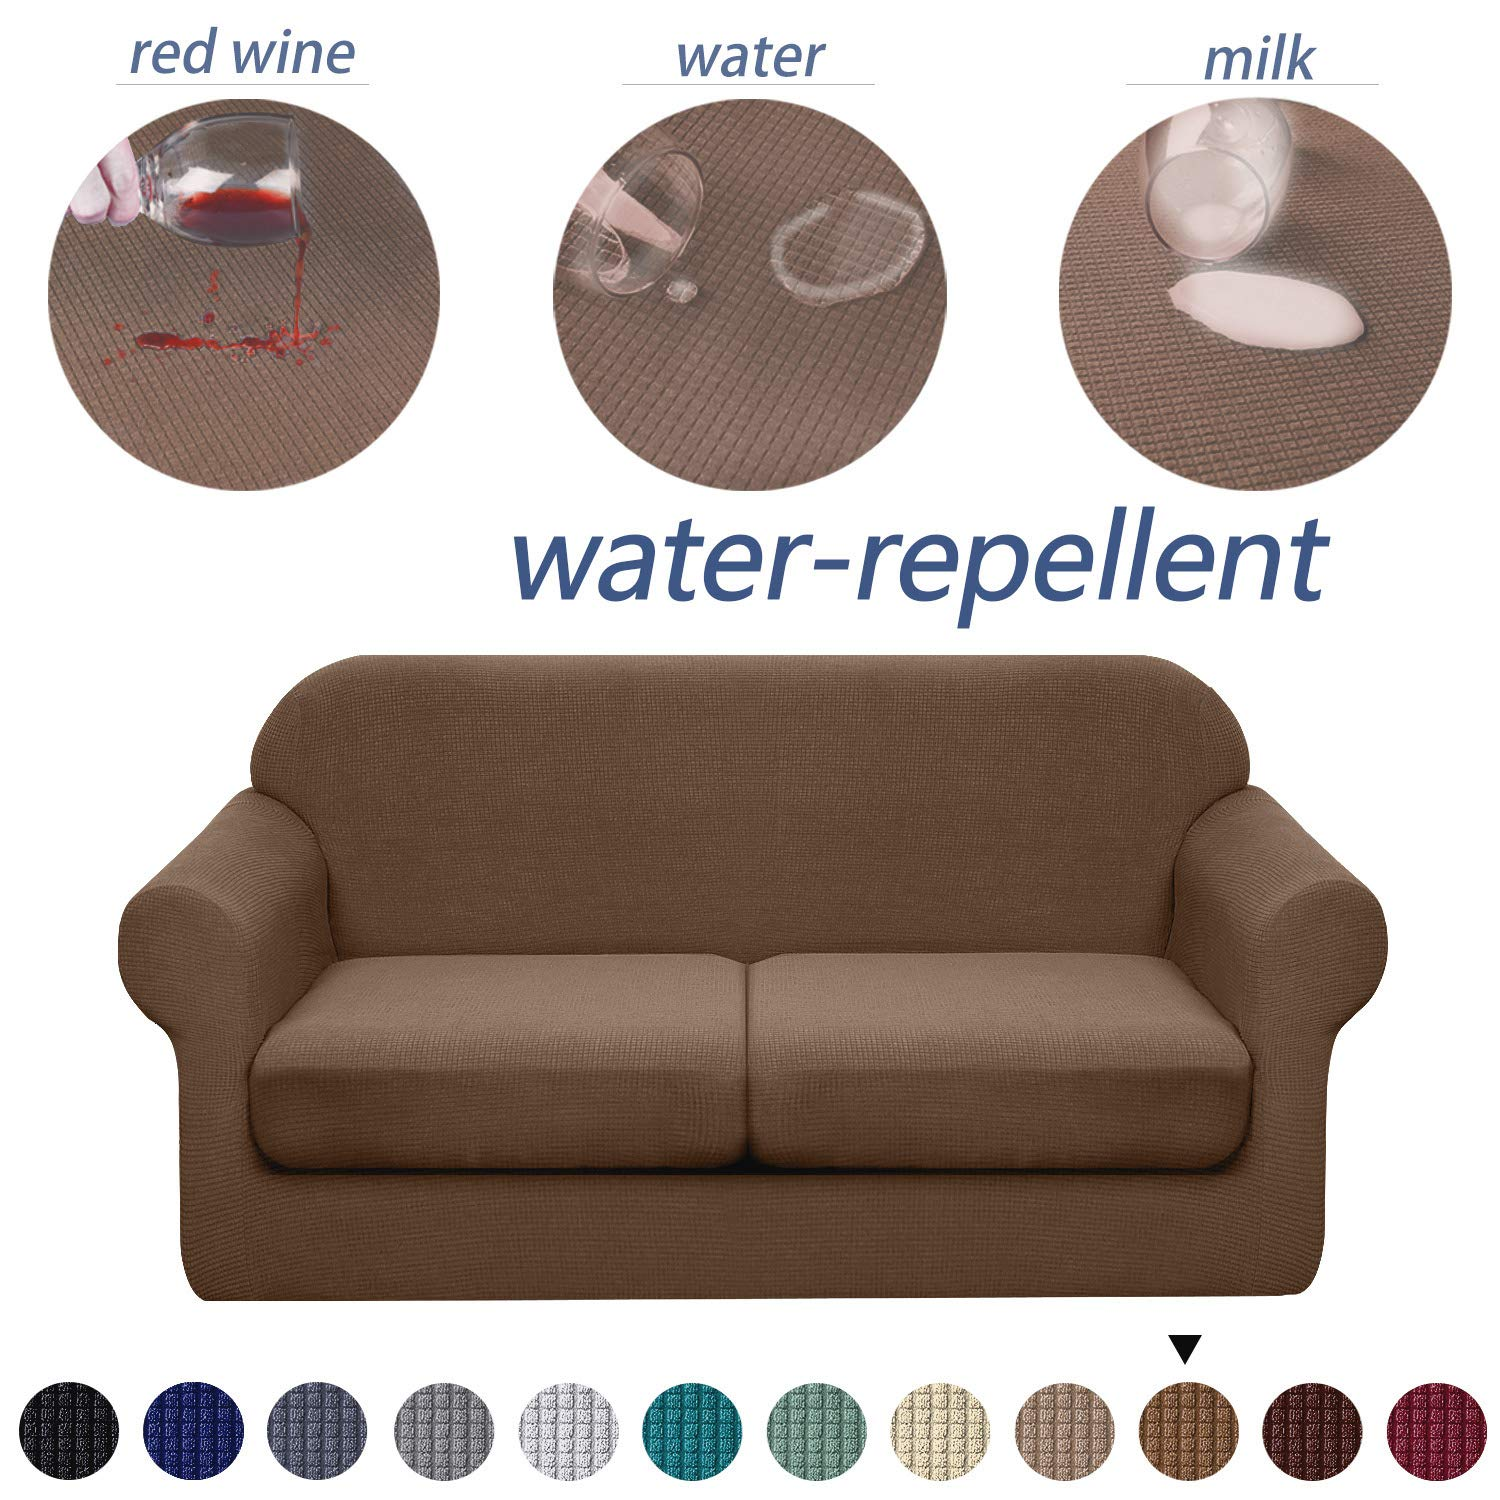 Granbest 3 Piece Premium Water-Repellent Couch Slipcover for 2 Cushion Couch Super Soft Loveseat Sofa Covers High Stretch Separate Cushion Couch Covers for Dogs Furniture Cover (Medium, Coffee)